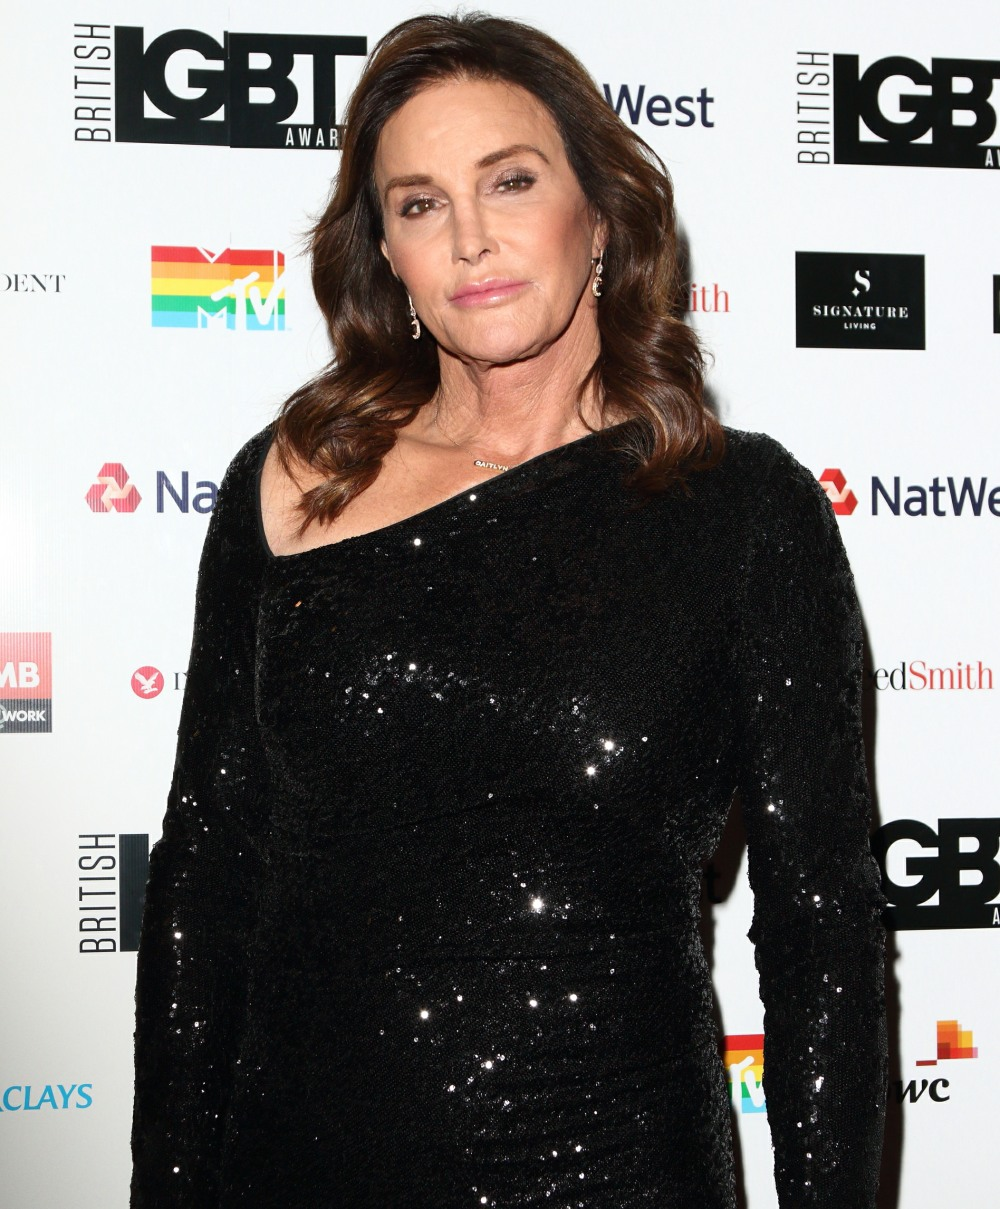 Caitlyn Jenner on the Steve Scalise shooting: 'Liberals can't even shoot straight'